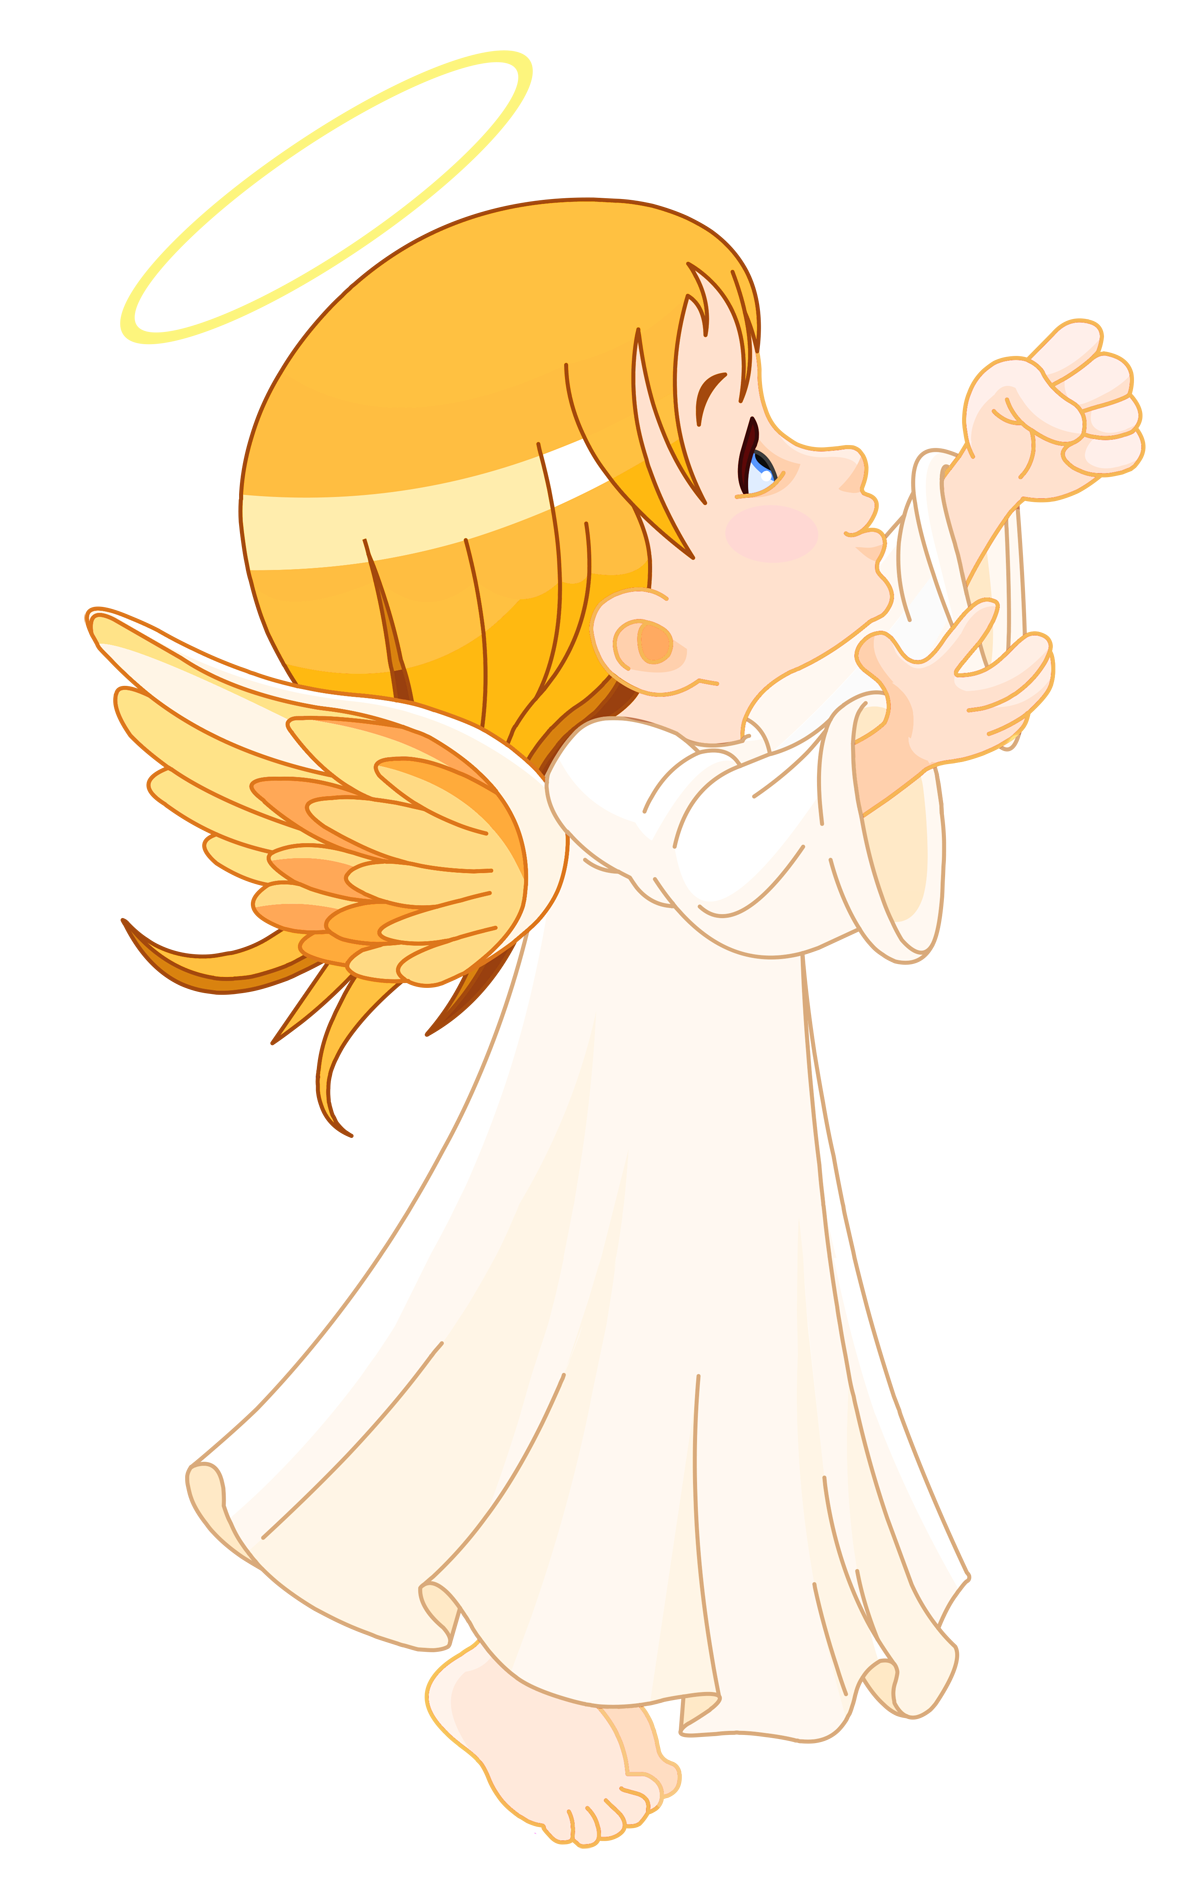 Png image web icons. Angel clipart transparent background